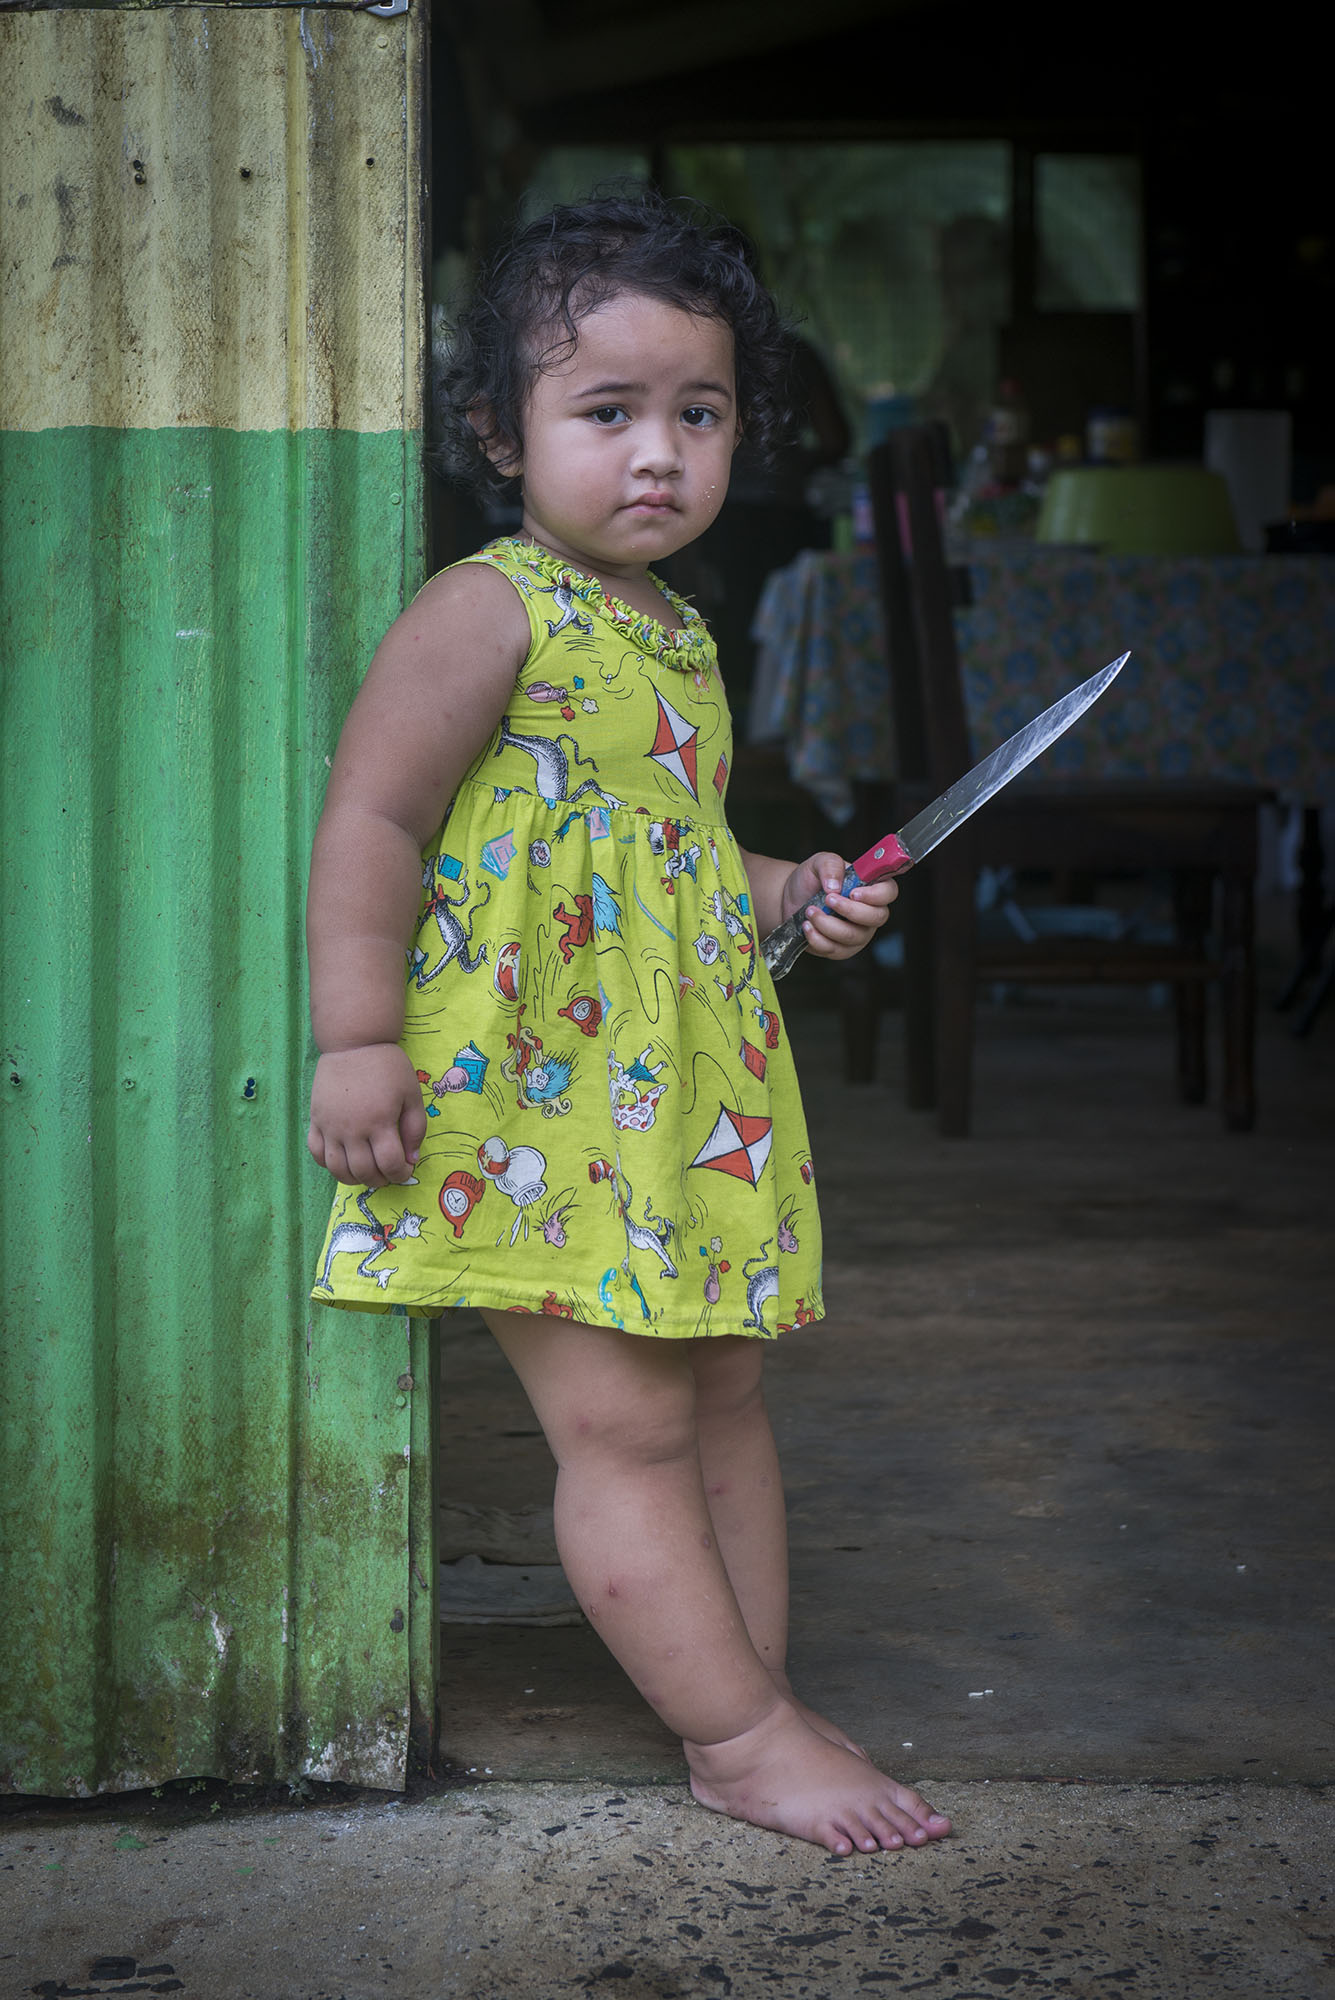 <p>A little girl watches from a doorway in the rural countryside of Pohnpei in the Federated States of Micronesia.</p>